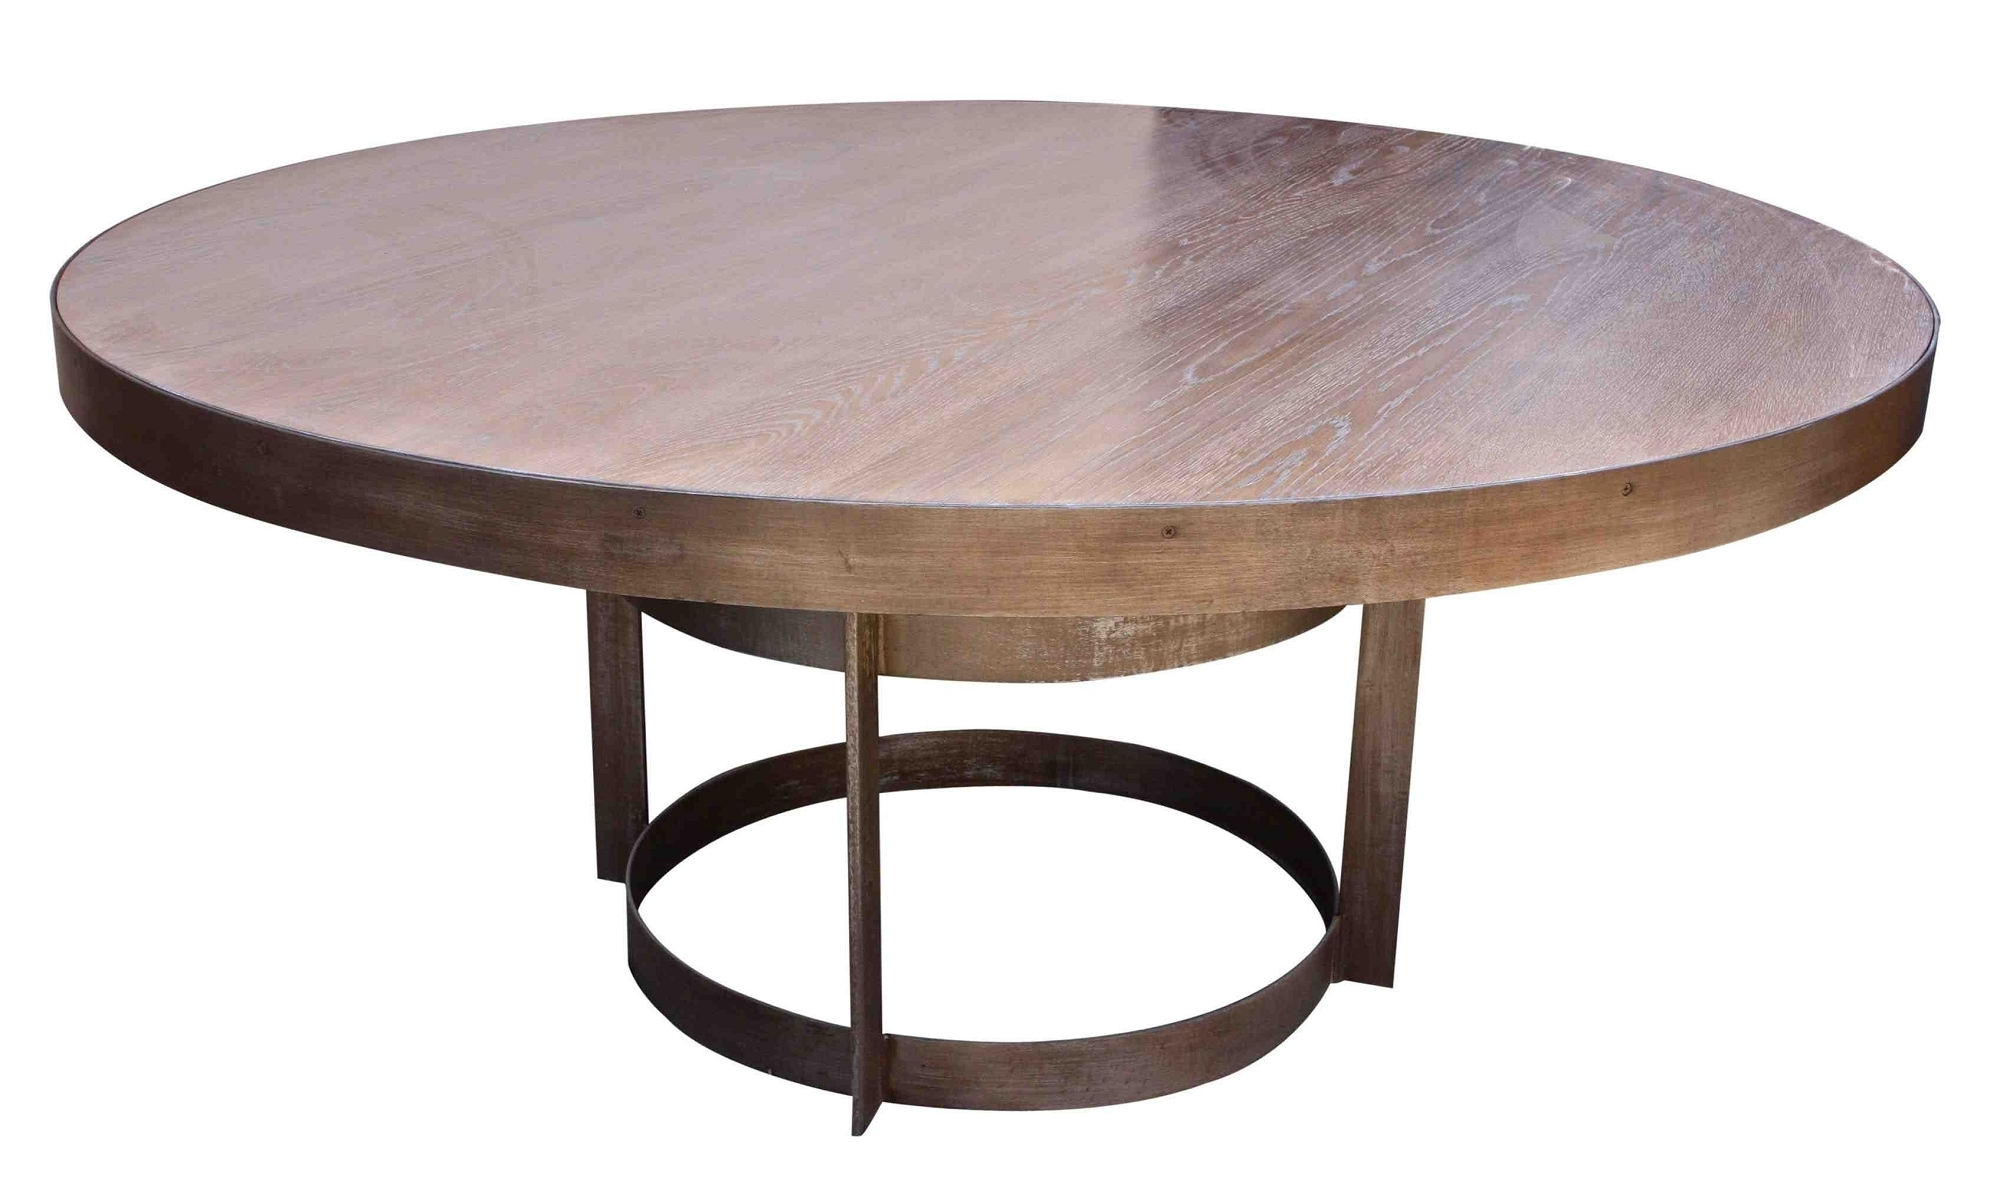 Dining Tables : Square Pedestal Table 54 Inch Round Dining, 54 Round Throughout Best And Newest Caira Black Round Dining Tables (View 20 of 20)